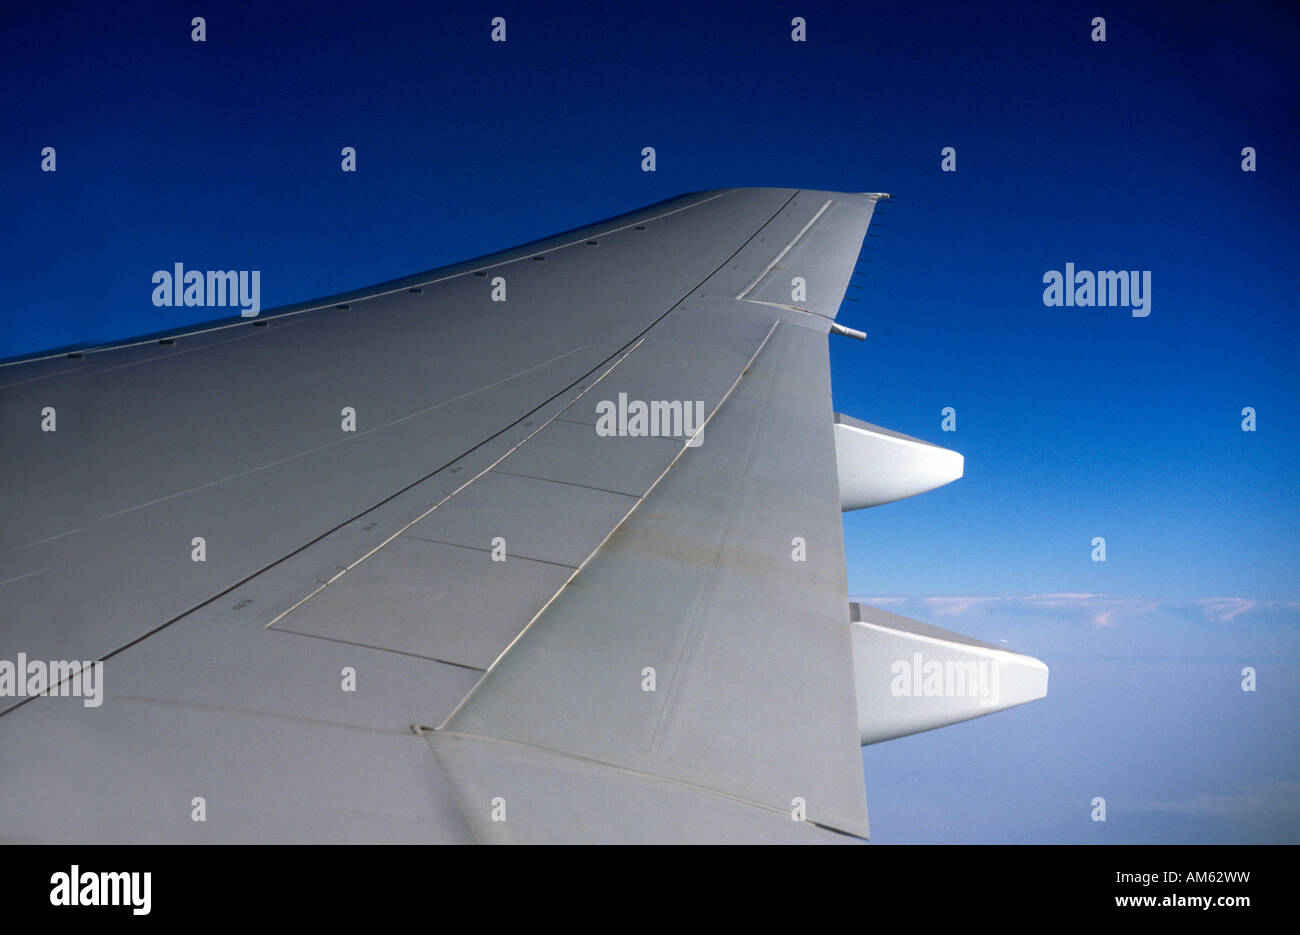 Wing Of Aeroplane Boeing 777 - Stock Image